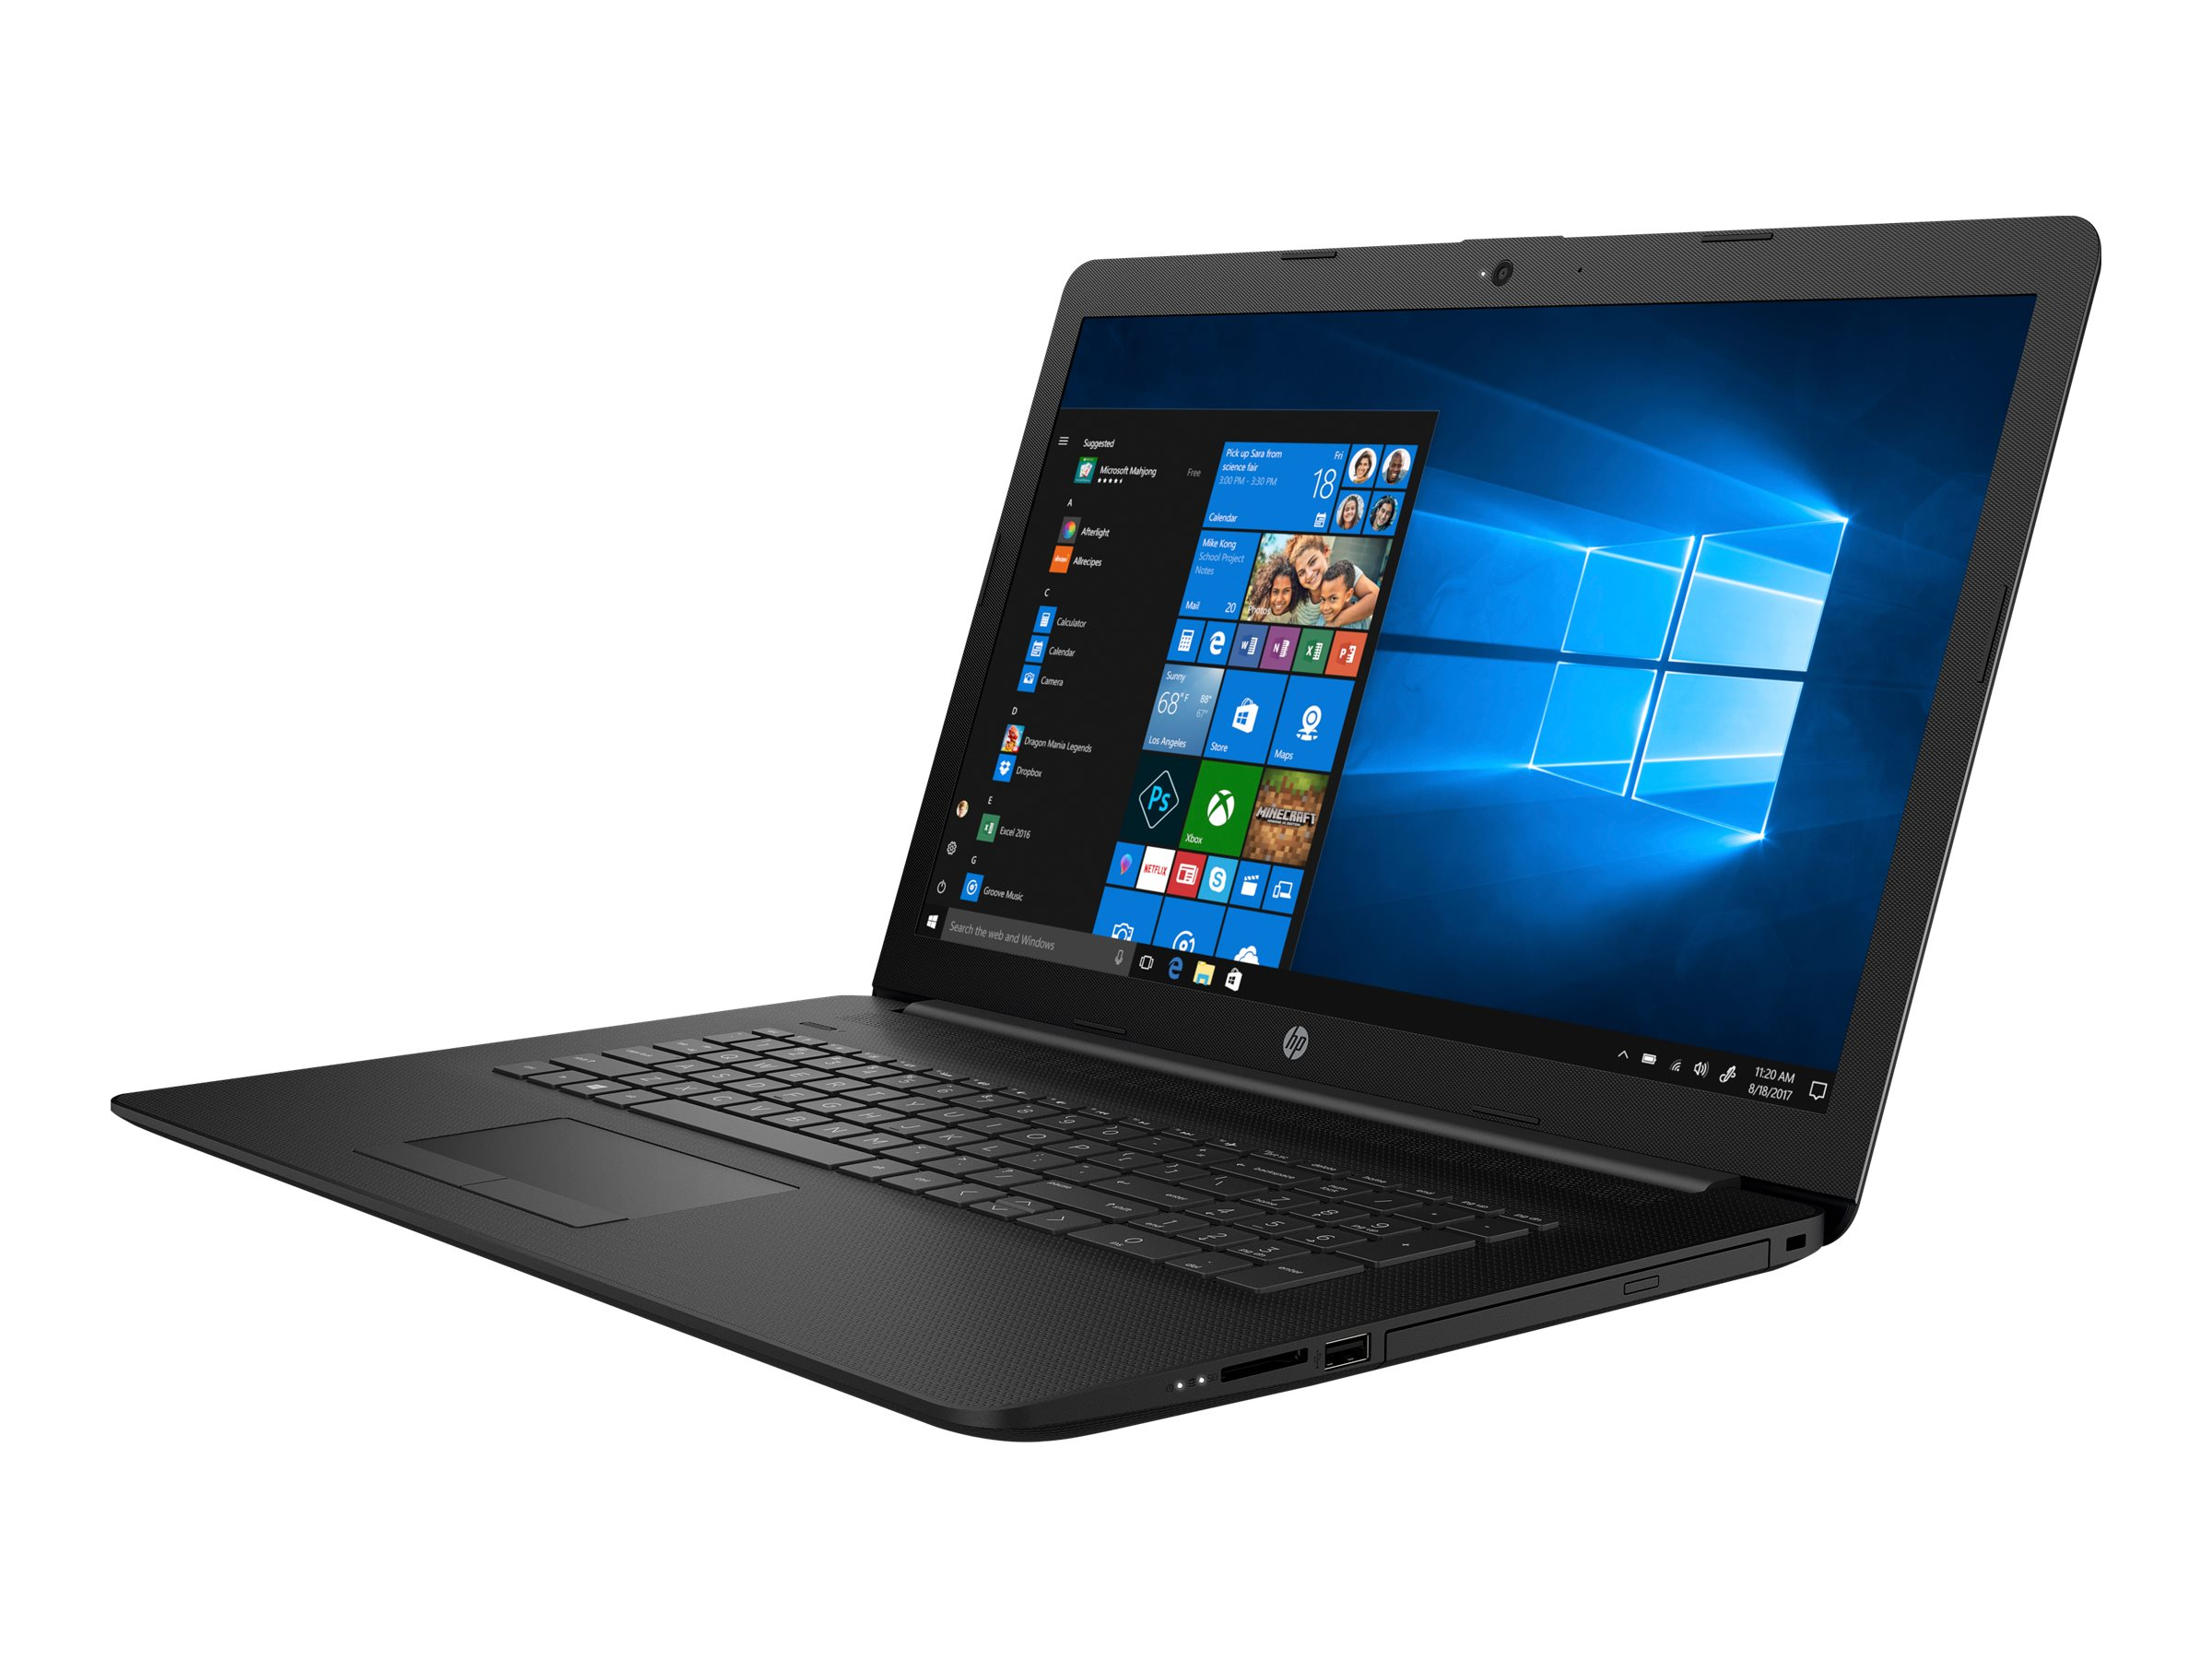 "HP 17-ca0450ng - A6 9225 / 2.6 GHz - Win 10 Home 64-Bit - 8 GB RAM - 256 GB SSD - DVD-Writer - 43.9 cm (17.3"")"